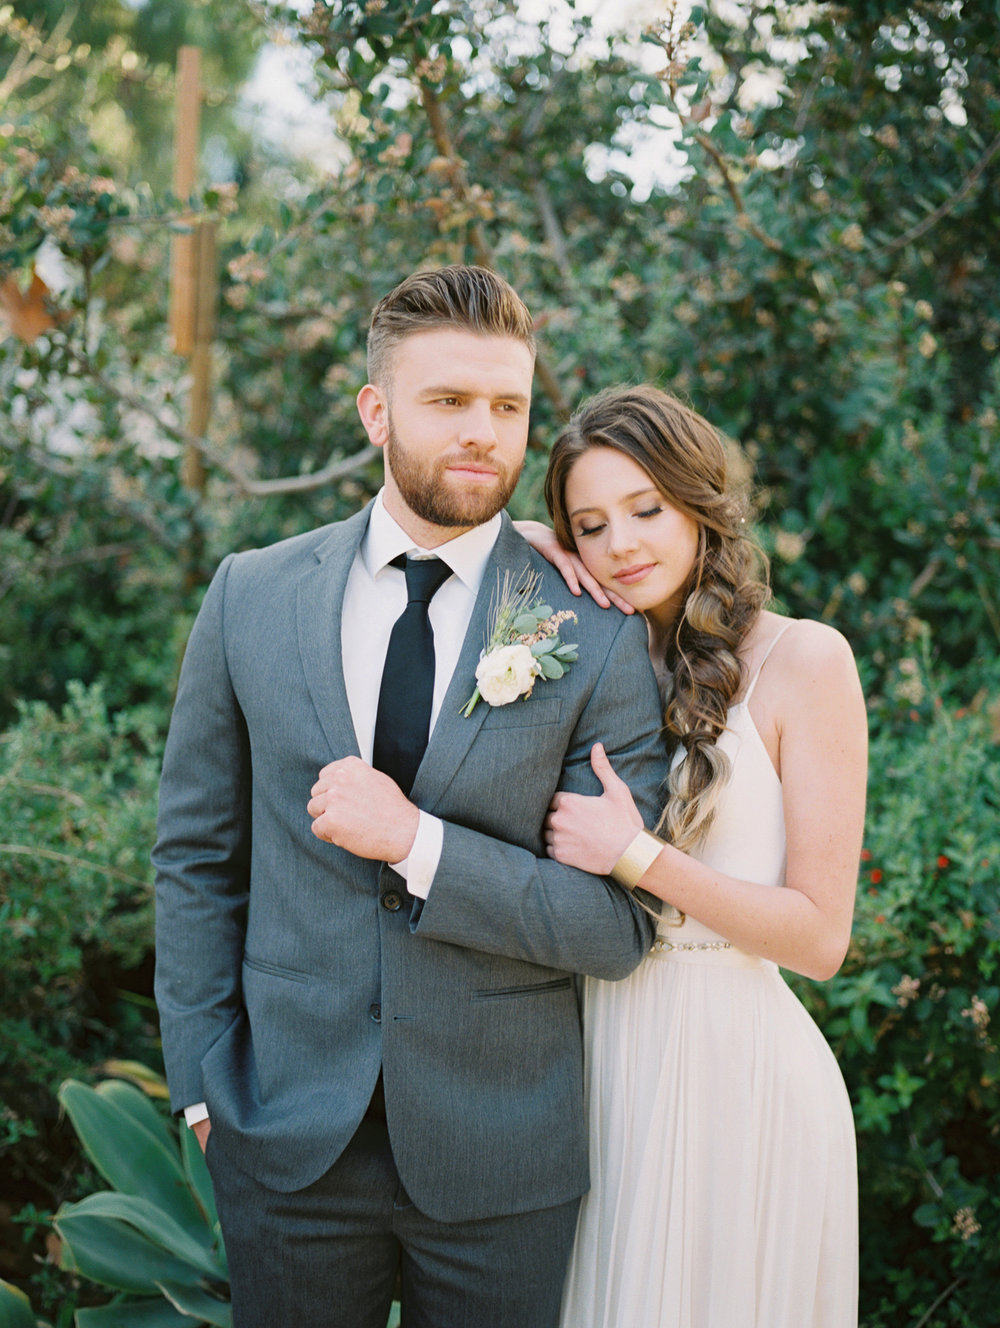 Amy-Golding-Wedding-Photography-SpringMarch2018(102of113).jpg